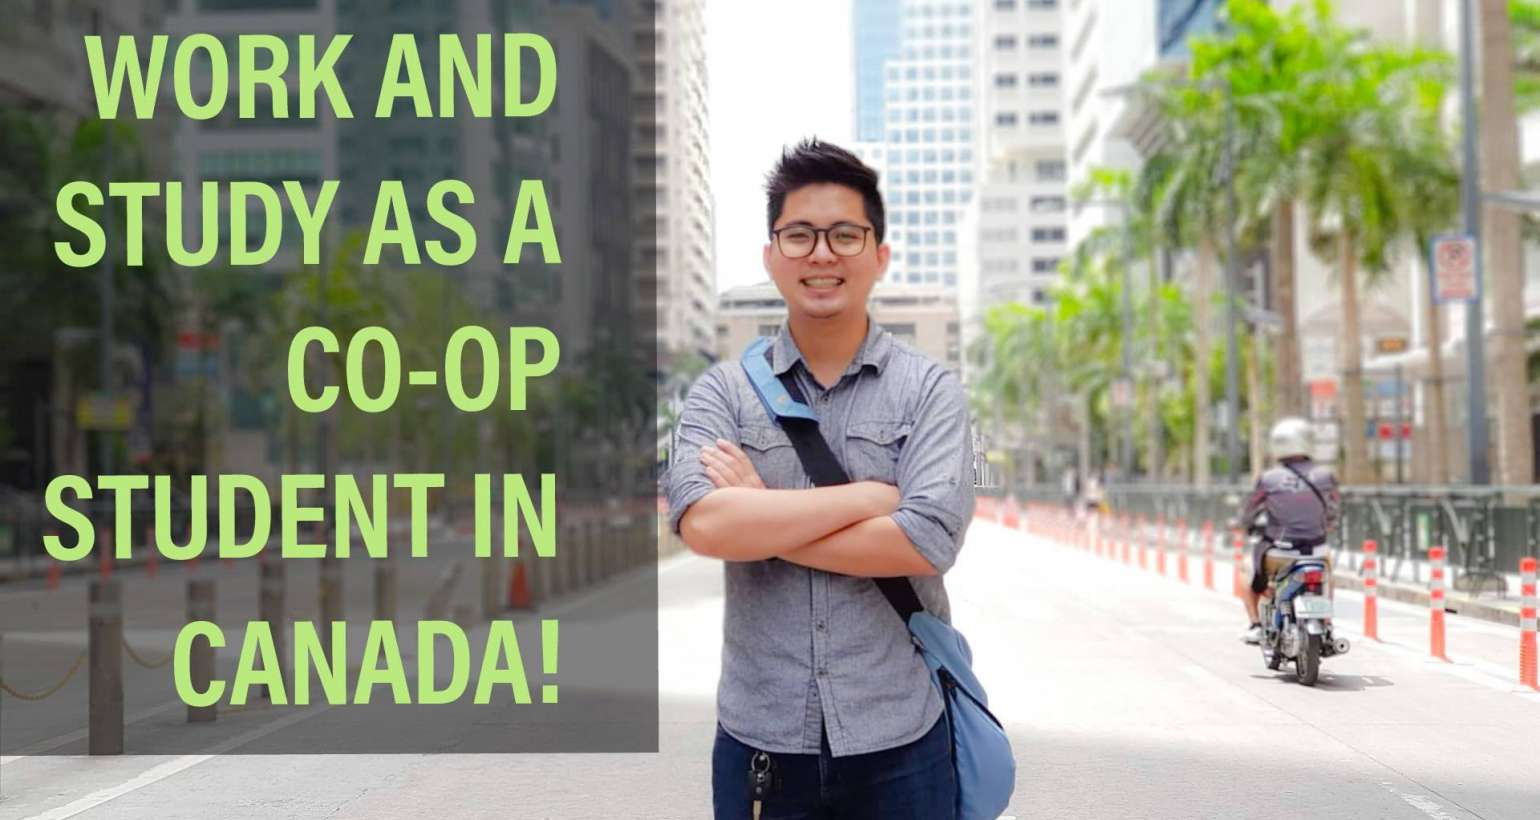 Work and study as a co-op student in Canada